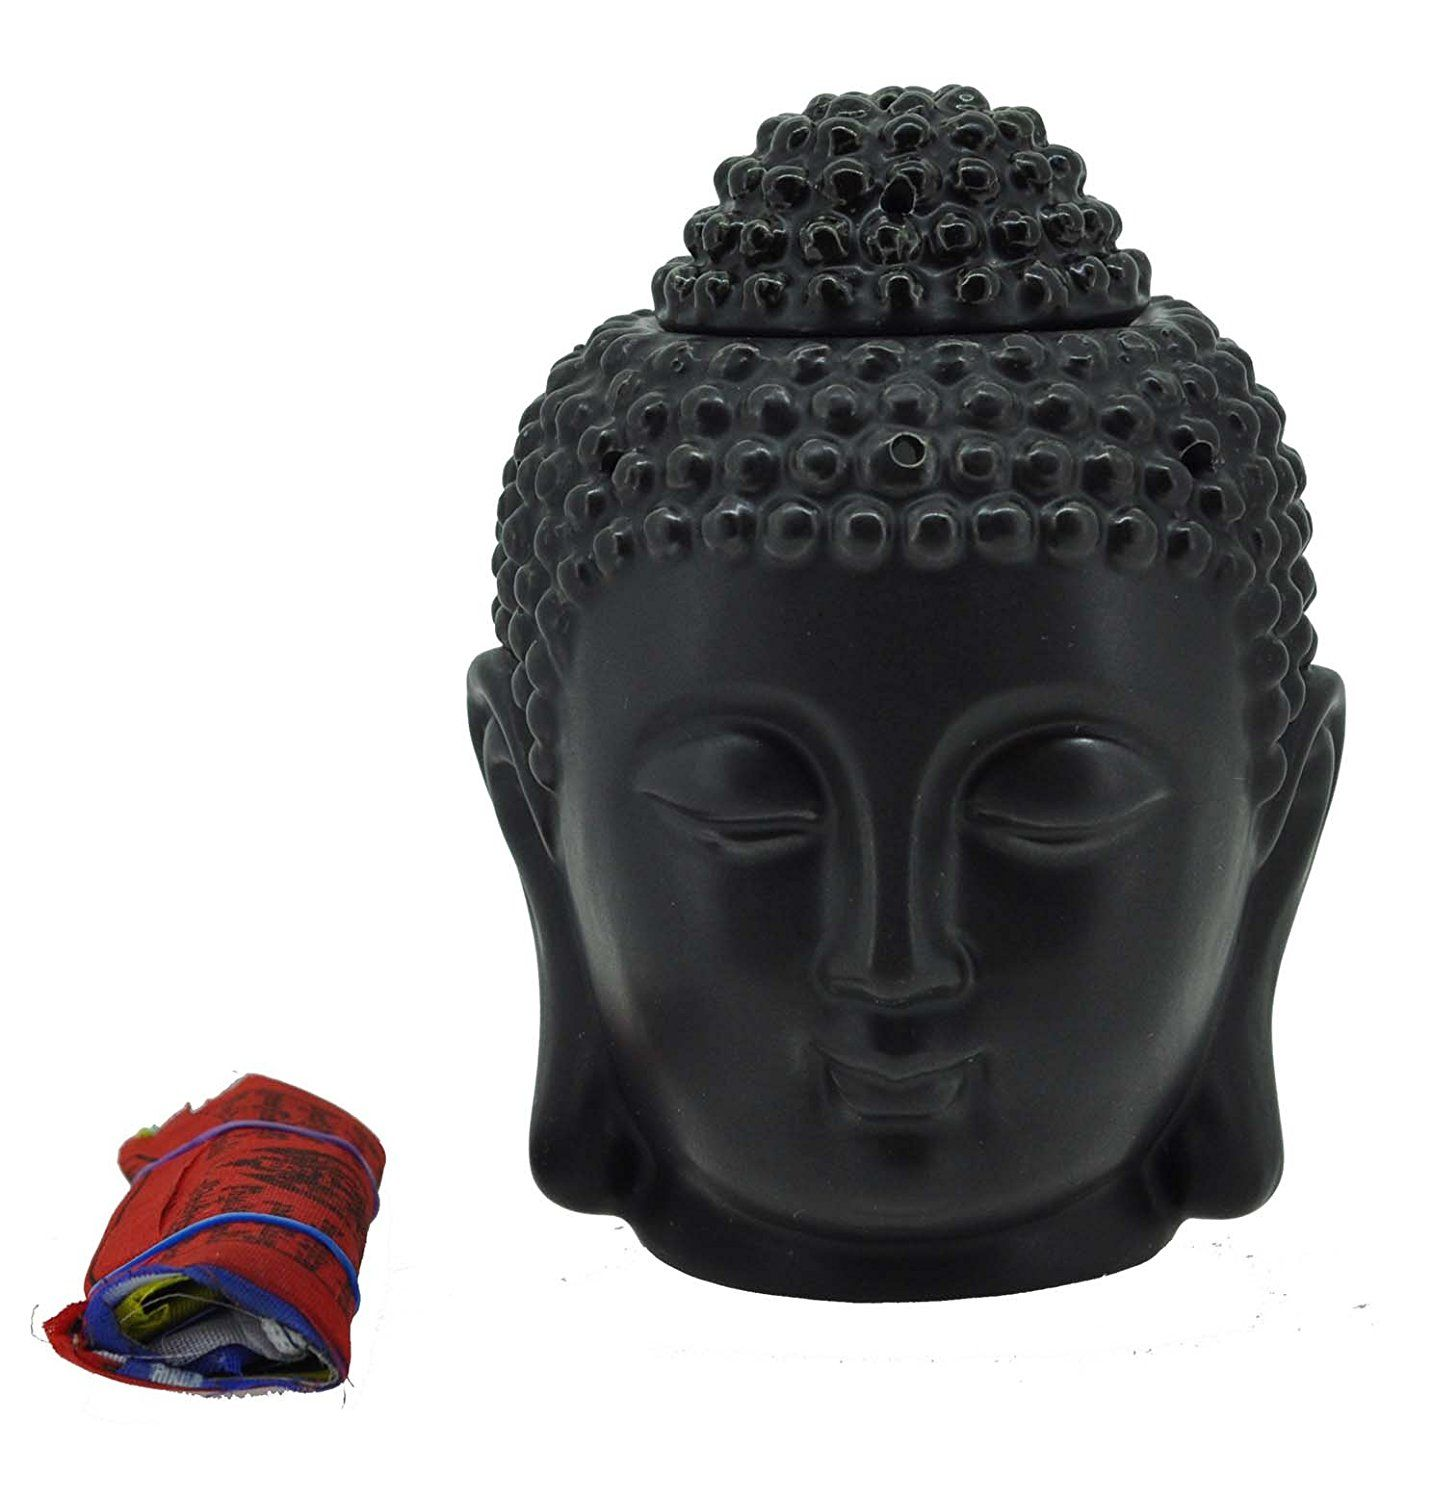 Mandala Crafts Porcelain Yoga Meditation Black Buddha Head Statue Oil